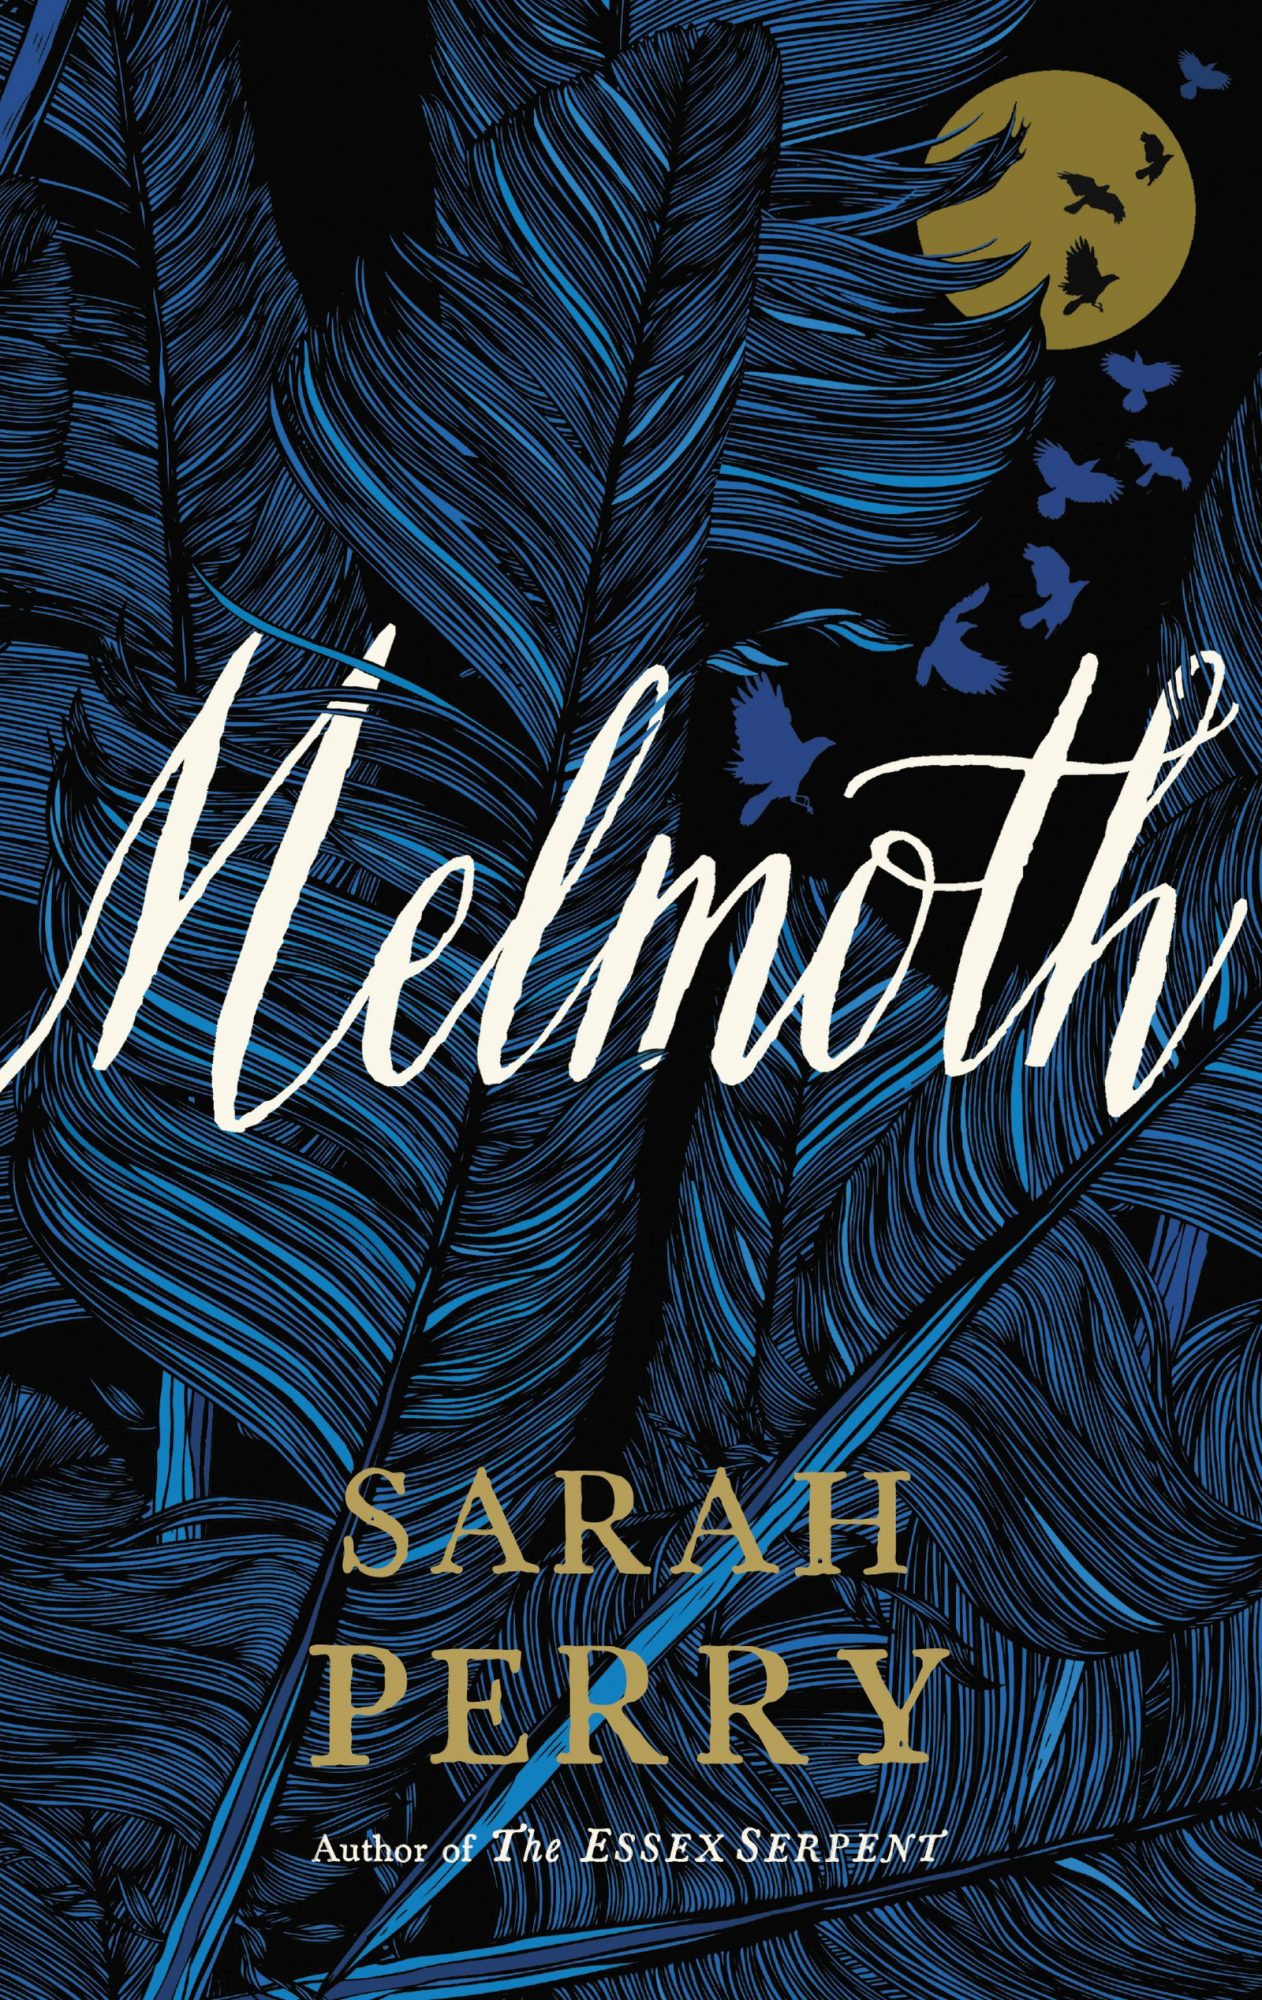 Melmoth: A Novel by Sarah Perry